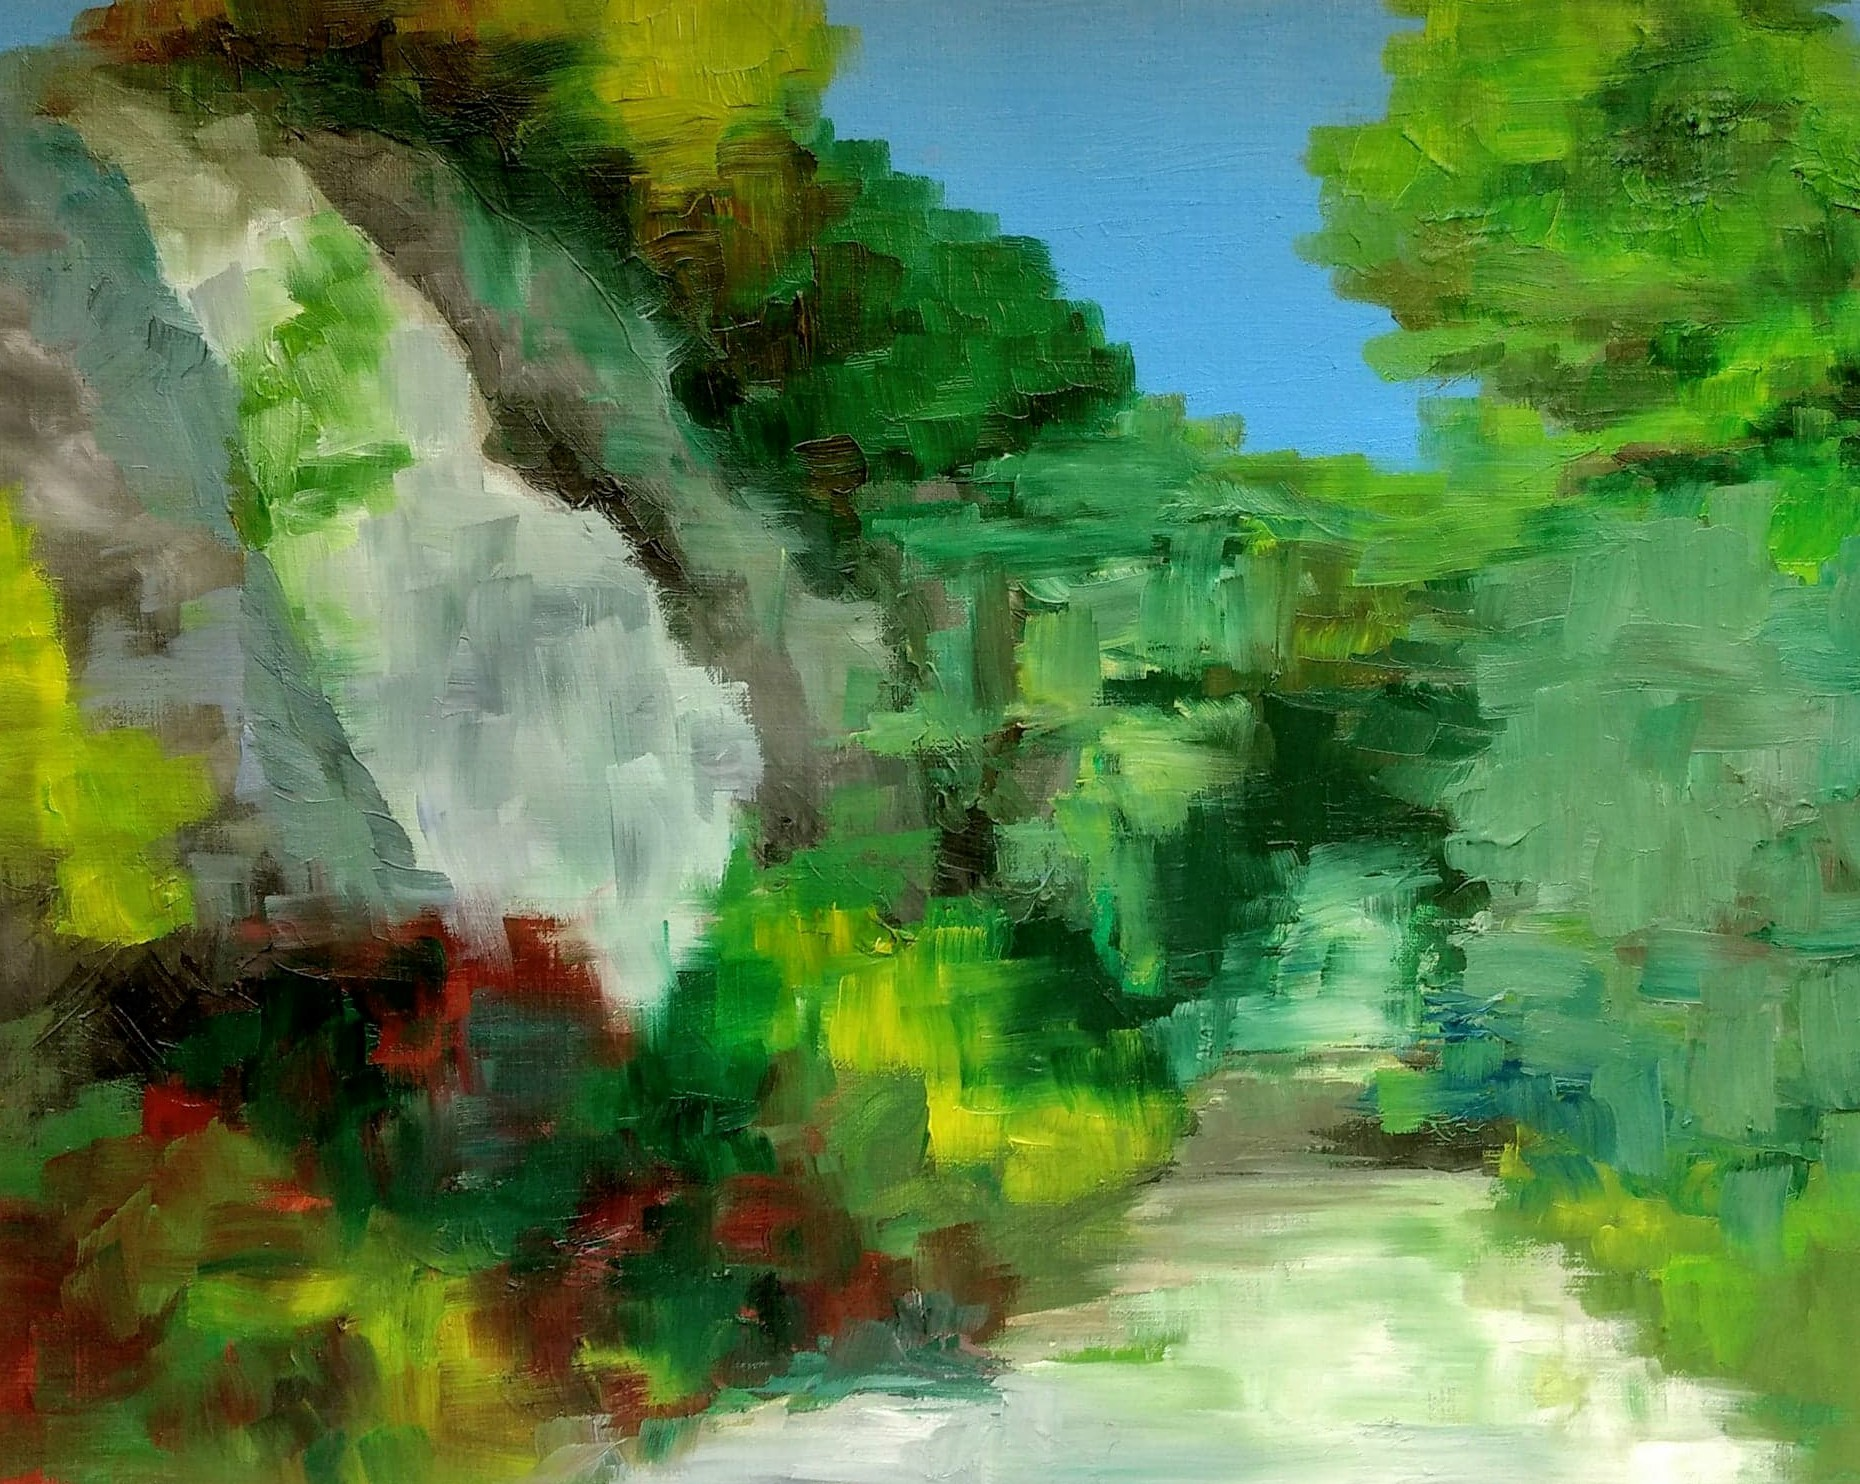 On the Trail   2017  9 in x 12 in  Oil on Paper